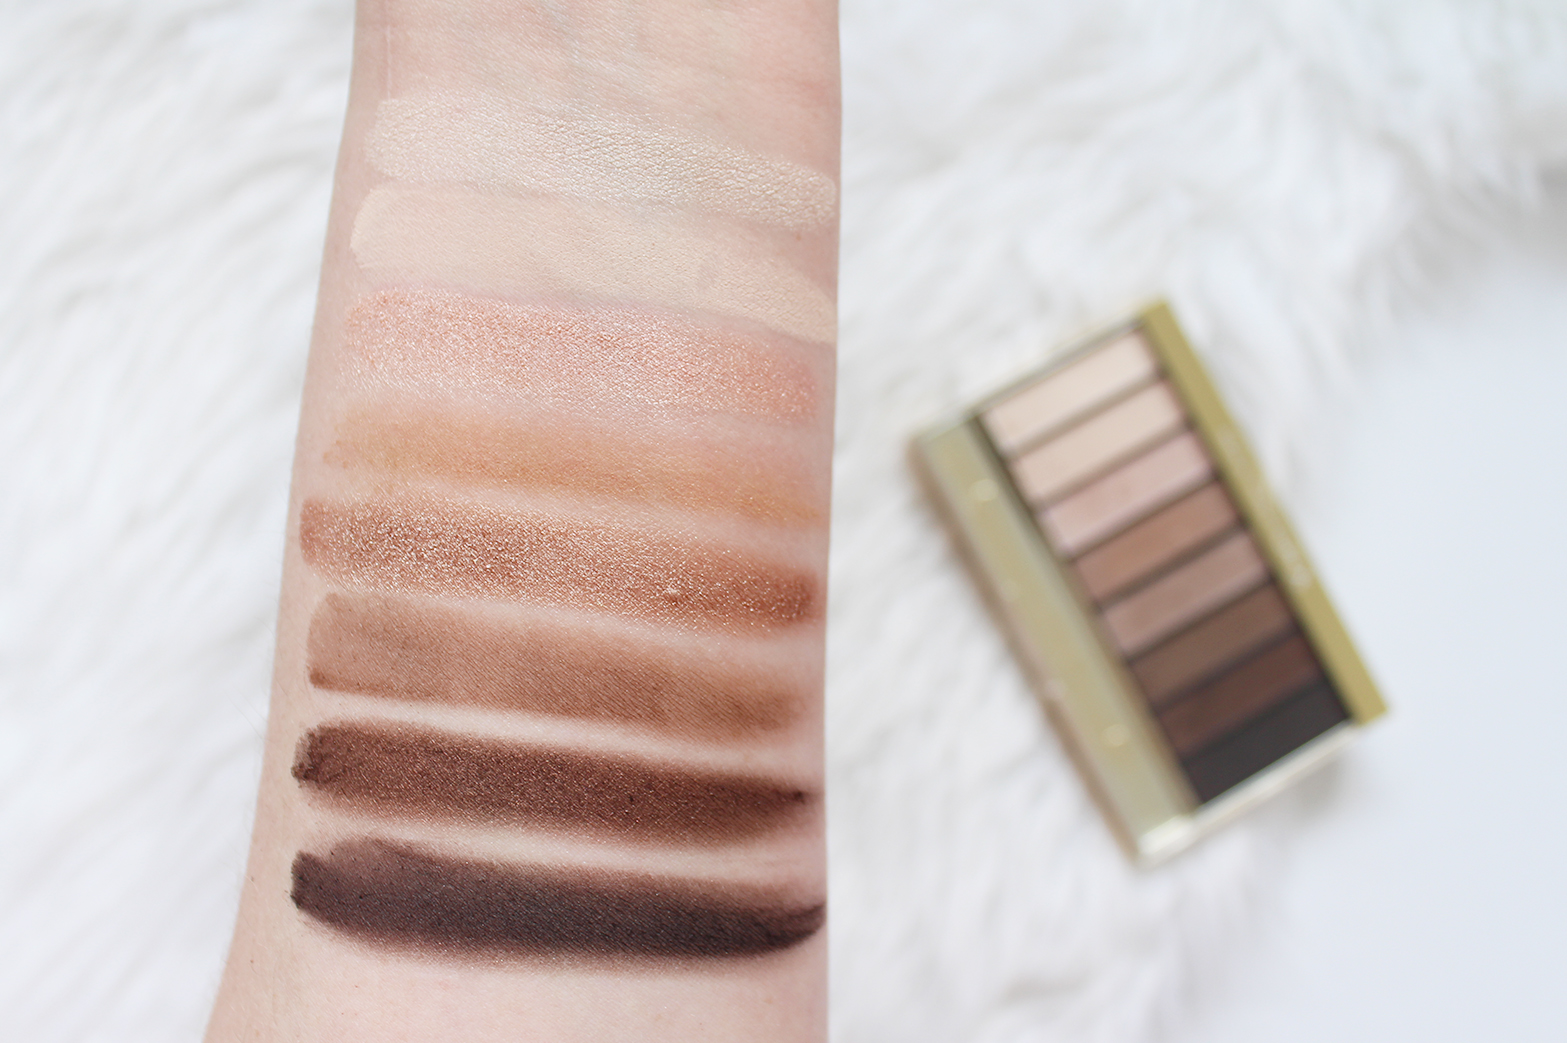 MAX FACTOR | Masterpiece Nudes Contouring Eyeshadow Palette in Cappuccino Nudes + Voluptuous Mascara - Review + Swatches - CassandraMyee